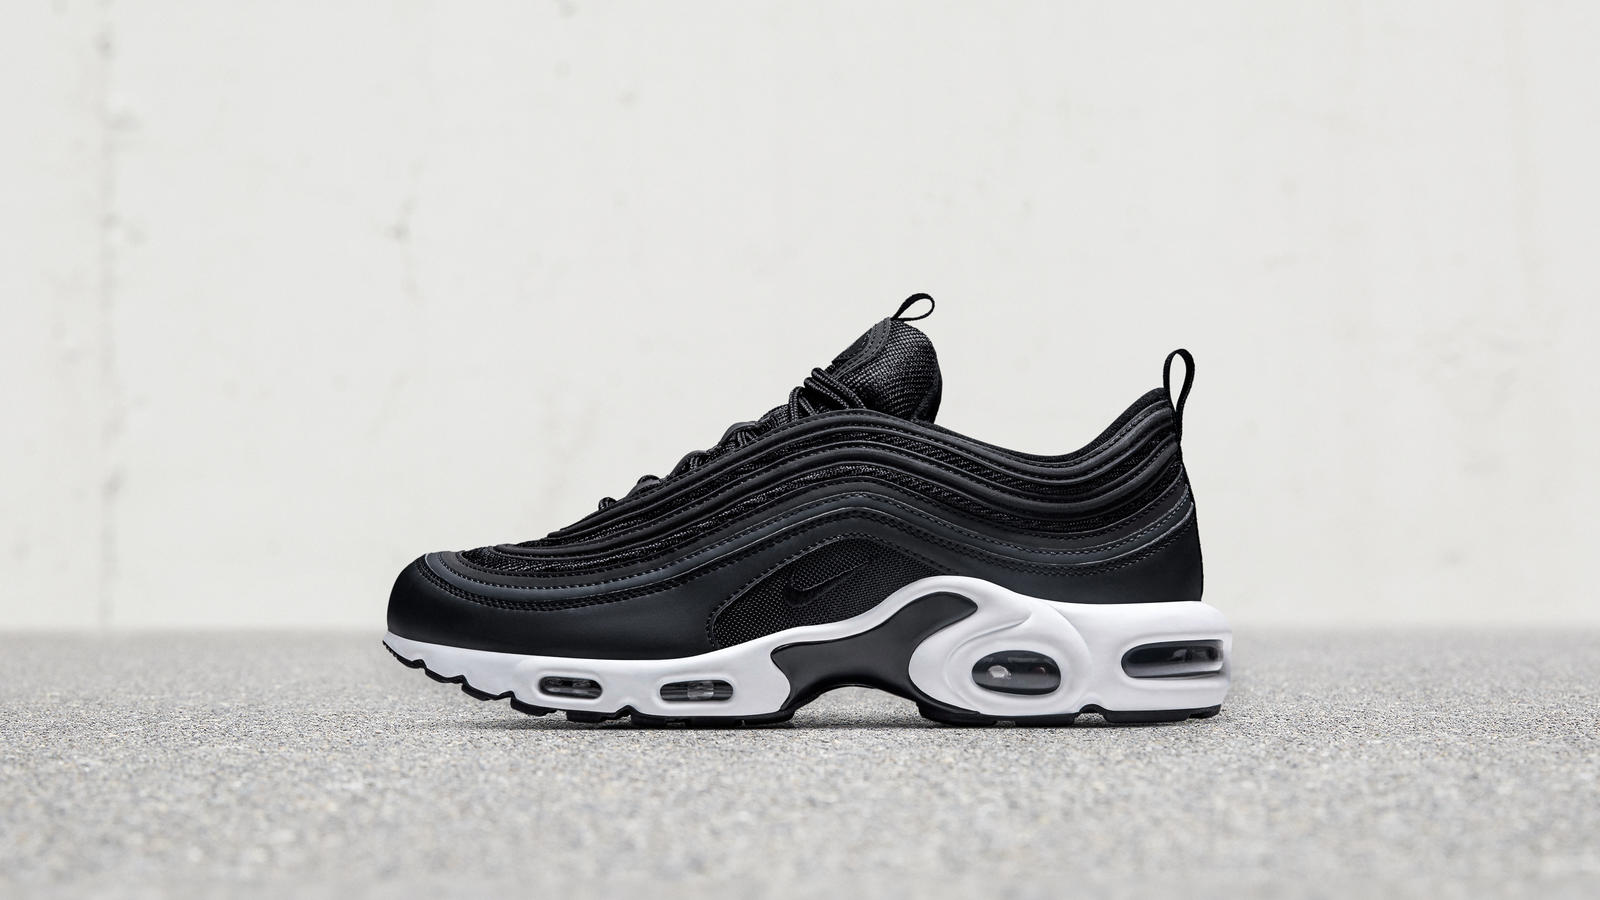 Nike Air Max Plus   97 - Nike News 445f99b7c